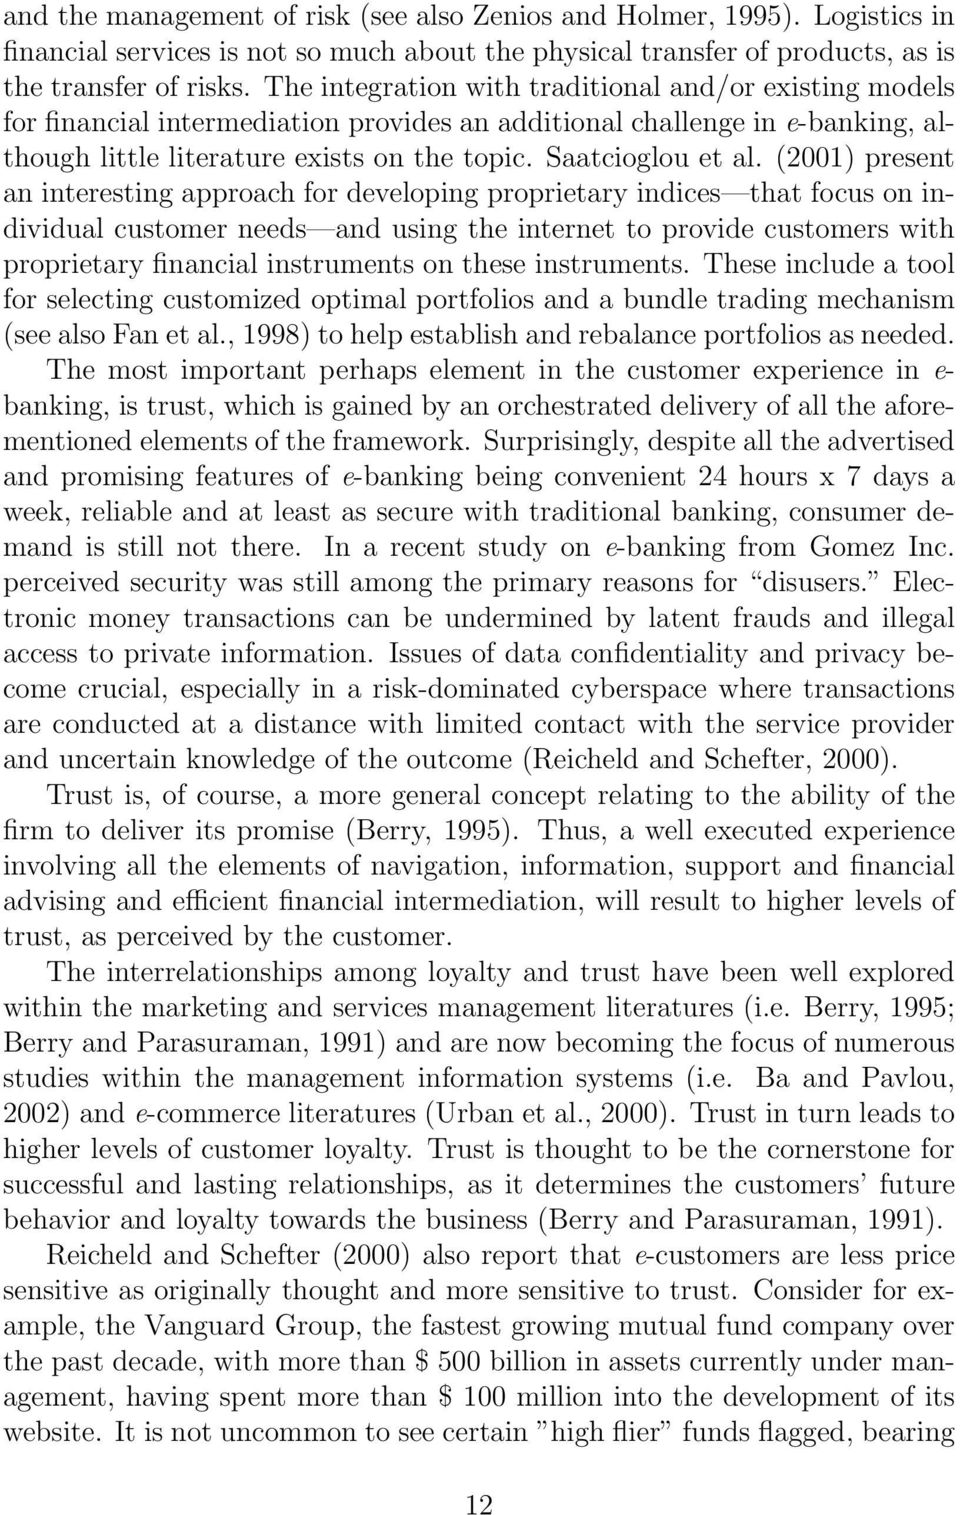 (2001) present an interesting approach for developing proprietary indices that focus on individual customer needs and using the internet to provide customers with proprietary financial instruments on